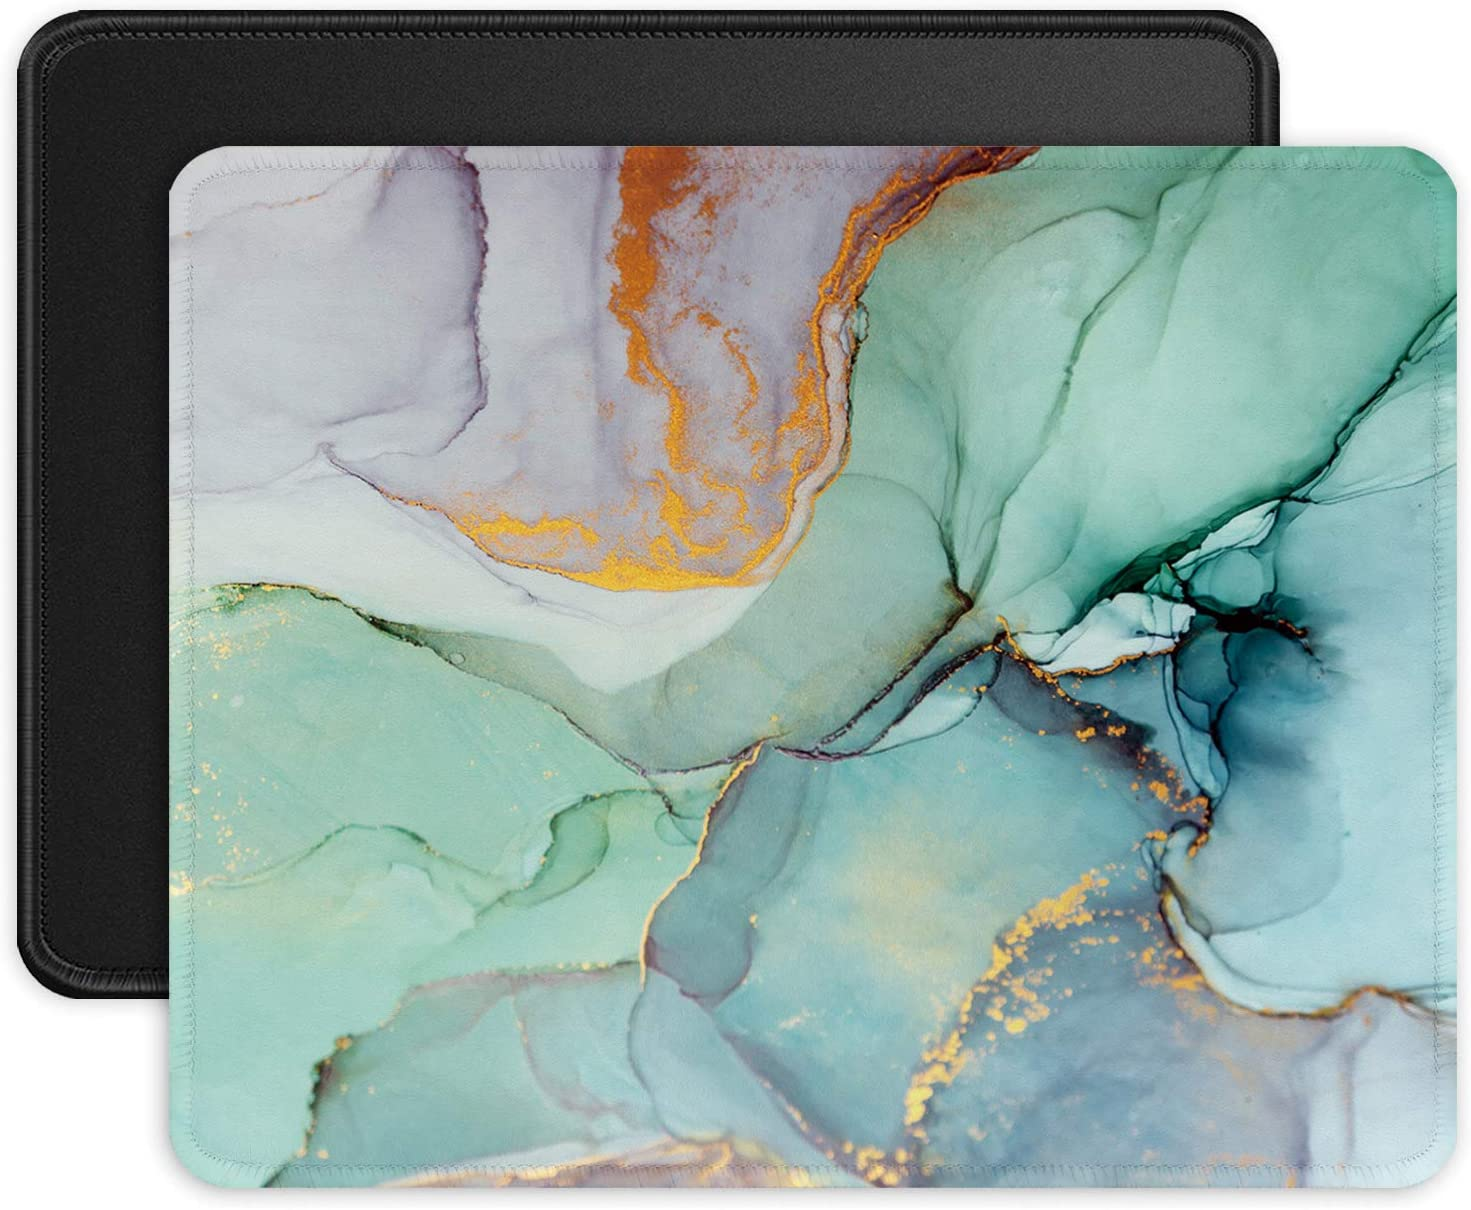 ITNRSIIET Mouse Pads [2-Pack] with Stitched Edges, Premium-Textured Mouse Mat Pad for Women, Non-Slip Rubber Base Mousepad for Laptop, Computer & PC, 10.2×8.3×0.12 inches, Modern Marbling + Black